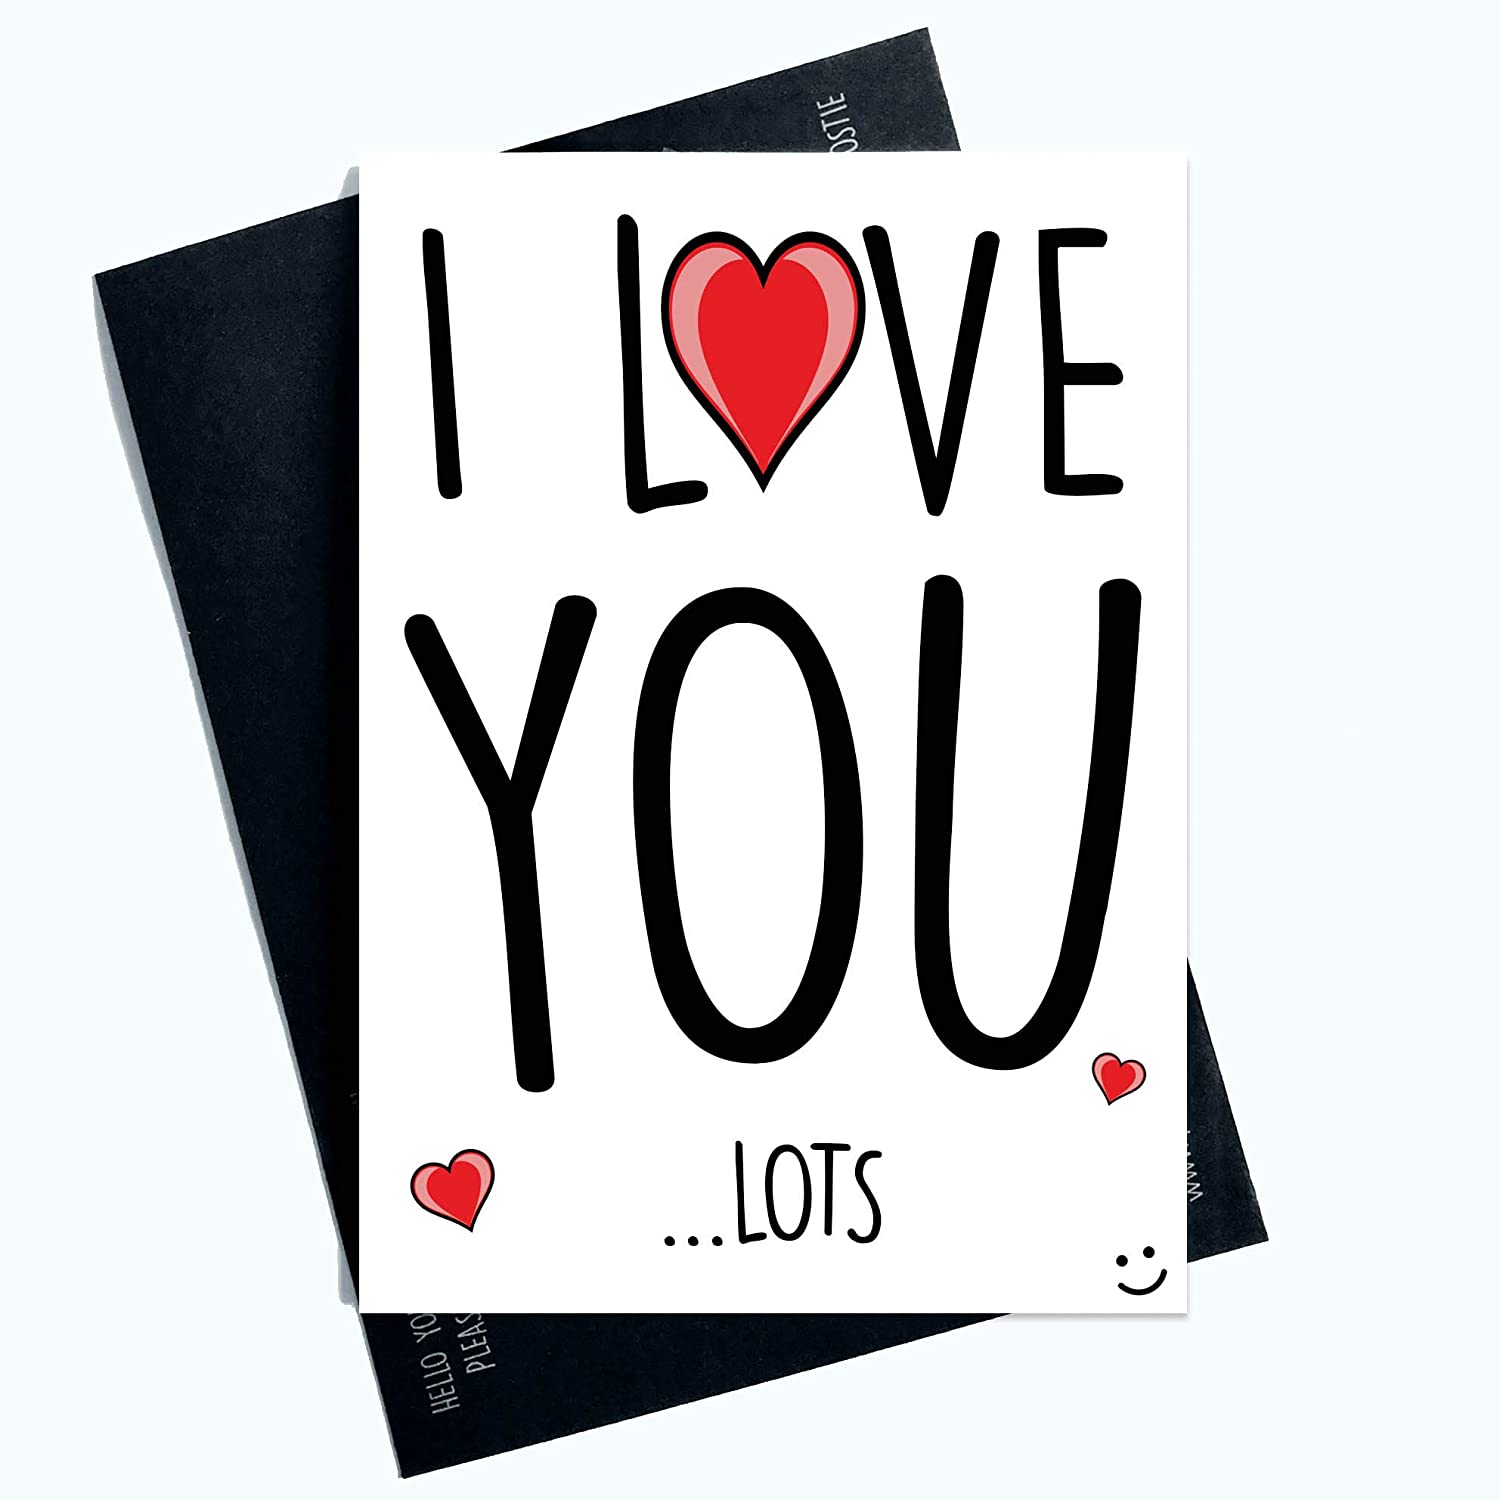 Funny Valentine's Day Cards Girlfriend Boyfriend Wife Husband Annoy You PC744 Cards & Stationery